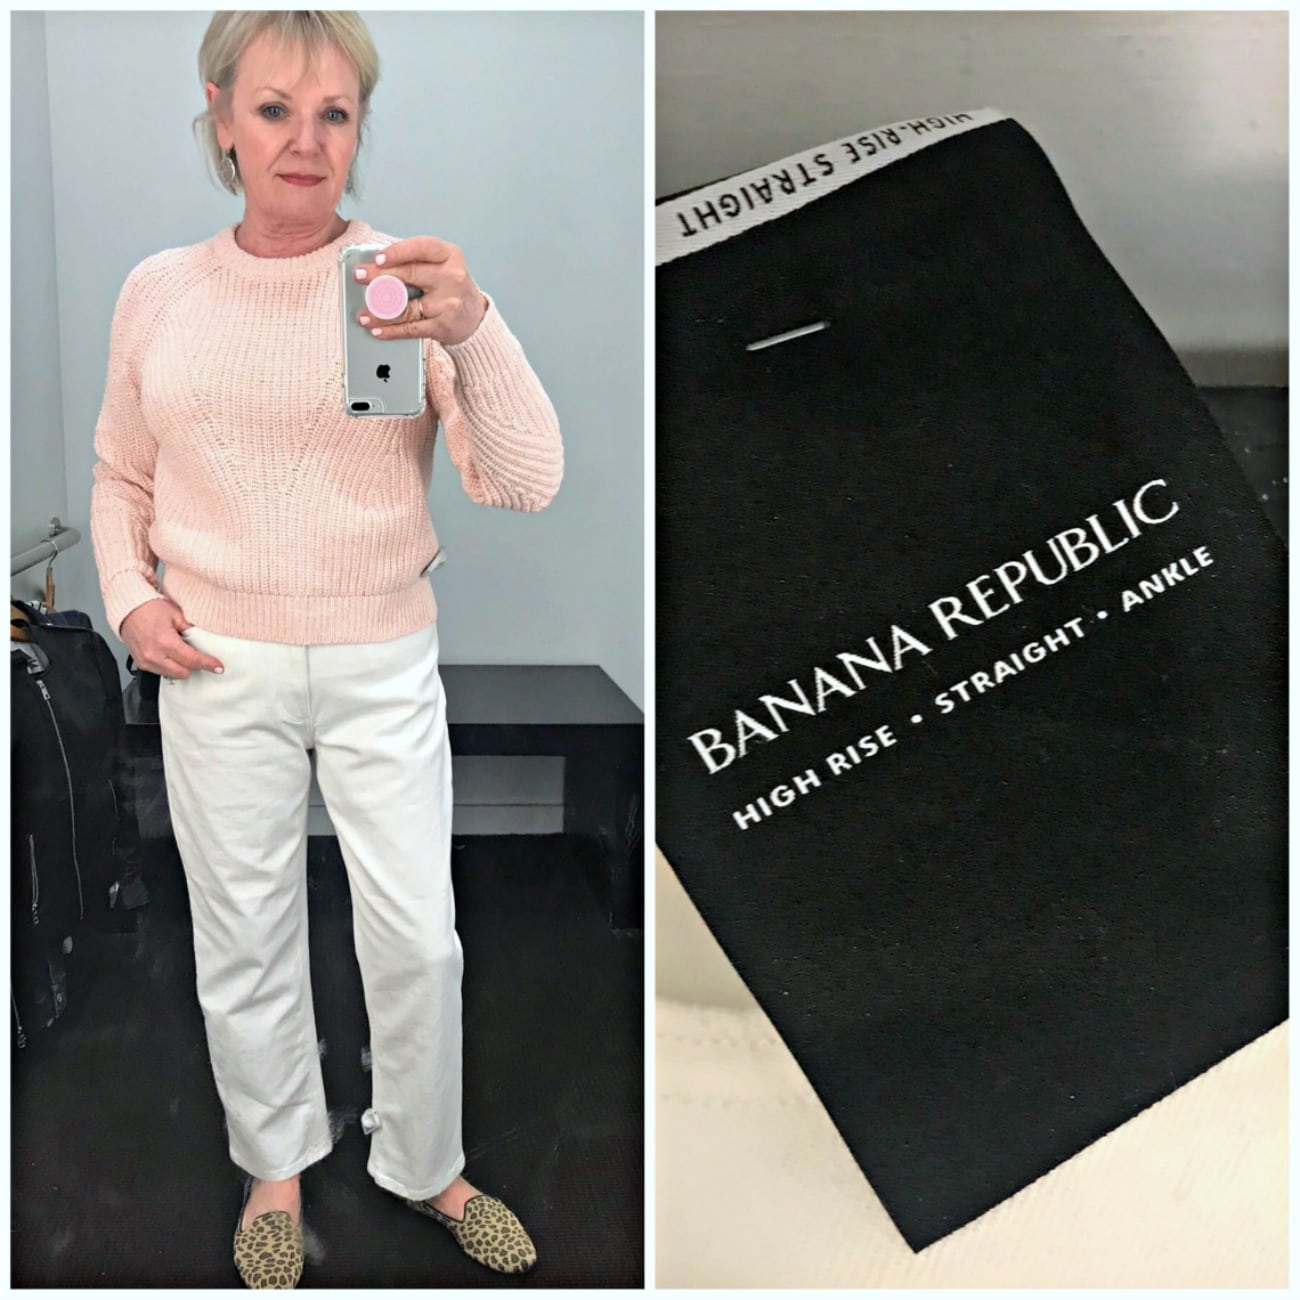 Jennifer of A Well Styled Life wearing Banana Republic white jeans and pink sweater